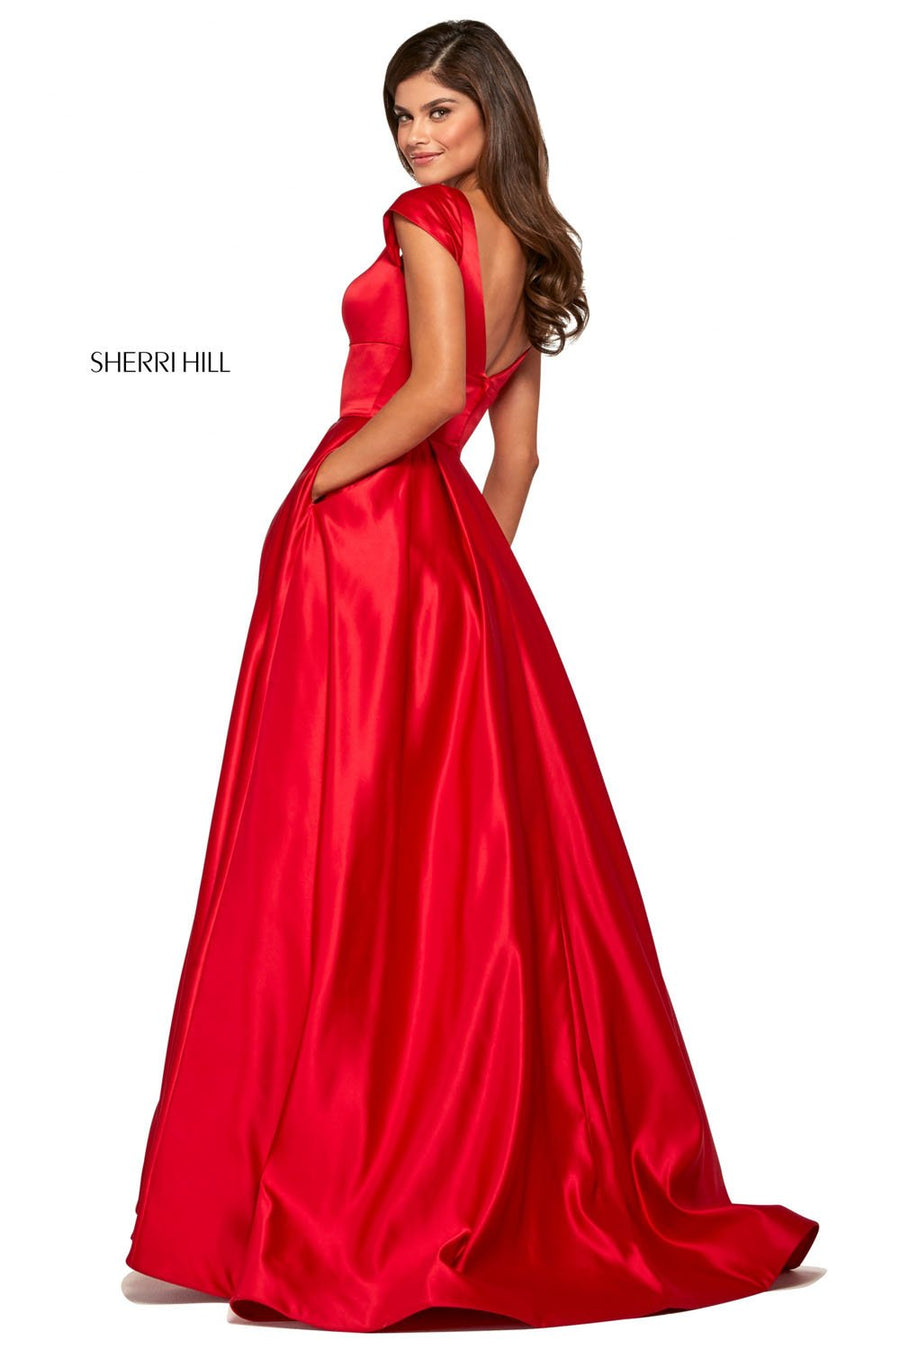 Sherri Hill 53314 prom dress images.  Sherri Hill 53314 is available in these colors: Candy Pink, Mocha, Yellow, Ivory, Blush, Light Blue, Emerald, Lilac, Red.